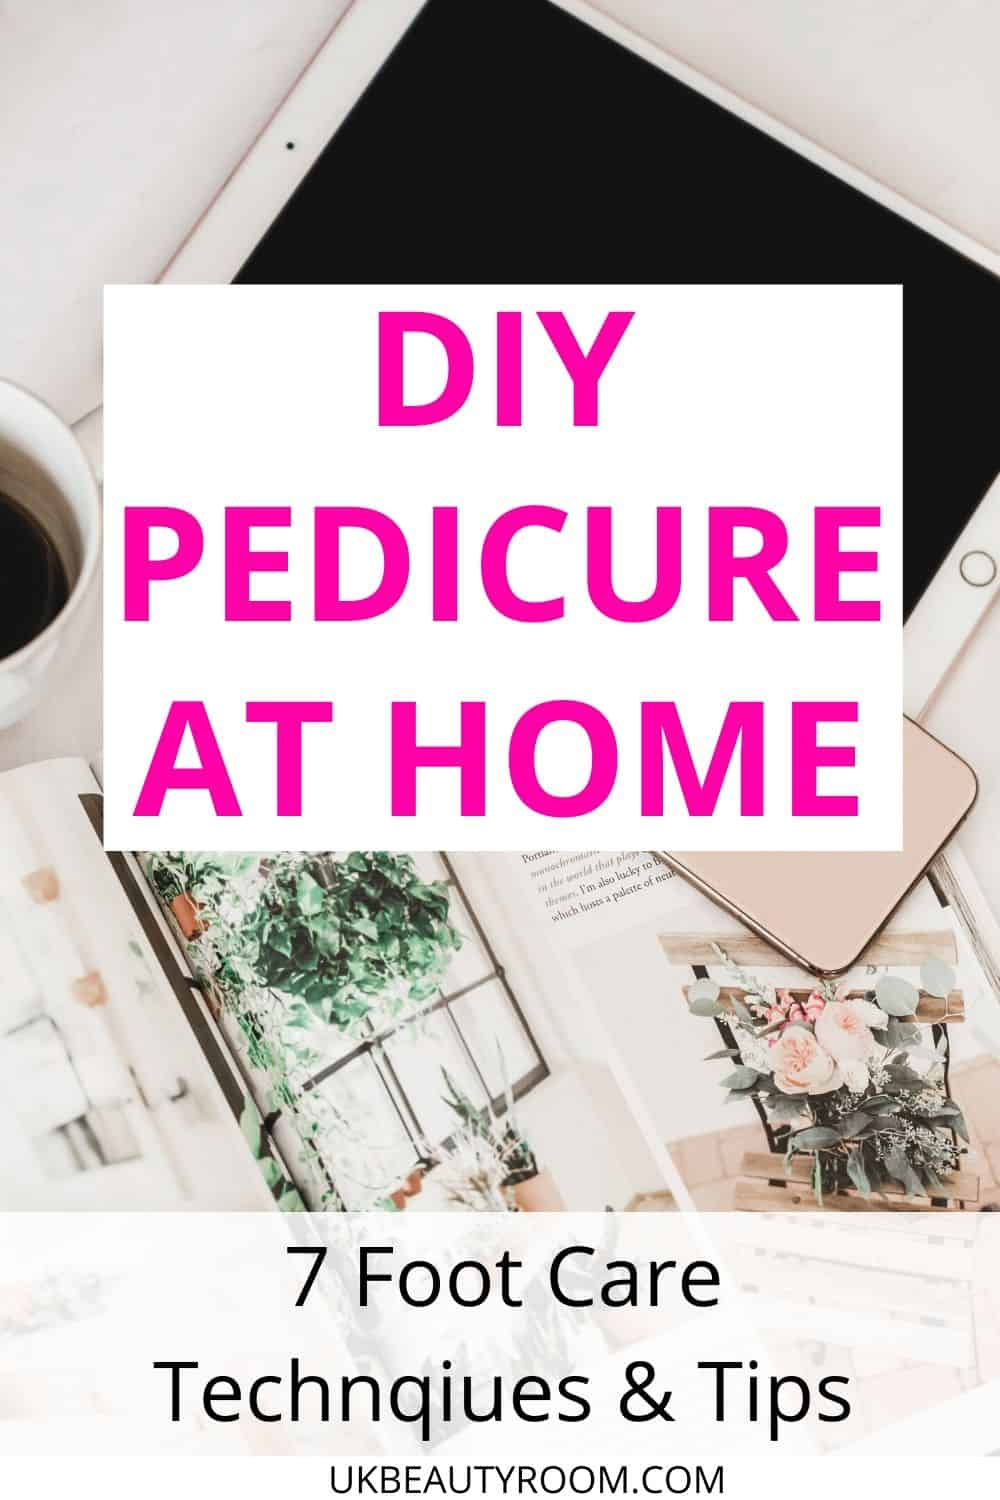 Keeping your feet healthy should be part of your daily routine. The ultimate guide to your DIY pedicure at home including all the products and steps you need.  Tips on how to make a foot care soak and scrub using epsom salt.  Care for diabetic foot, calluses, toe nails, remedies, corns, dry skin, cracked heels, and care for nurses who are on their feet all day!  Elevate your legs to improve blood circulation. This is good for runners, hiking, summer, pumice brush, tools, winter, how to get rid